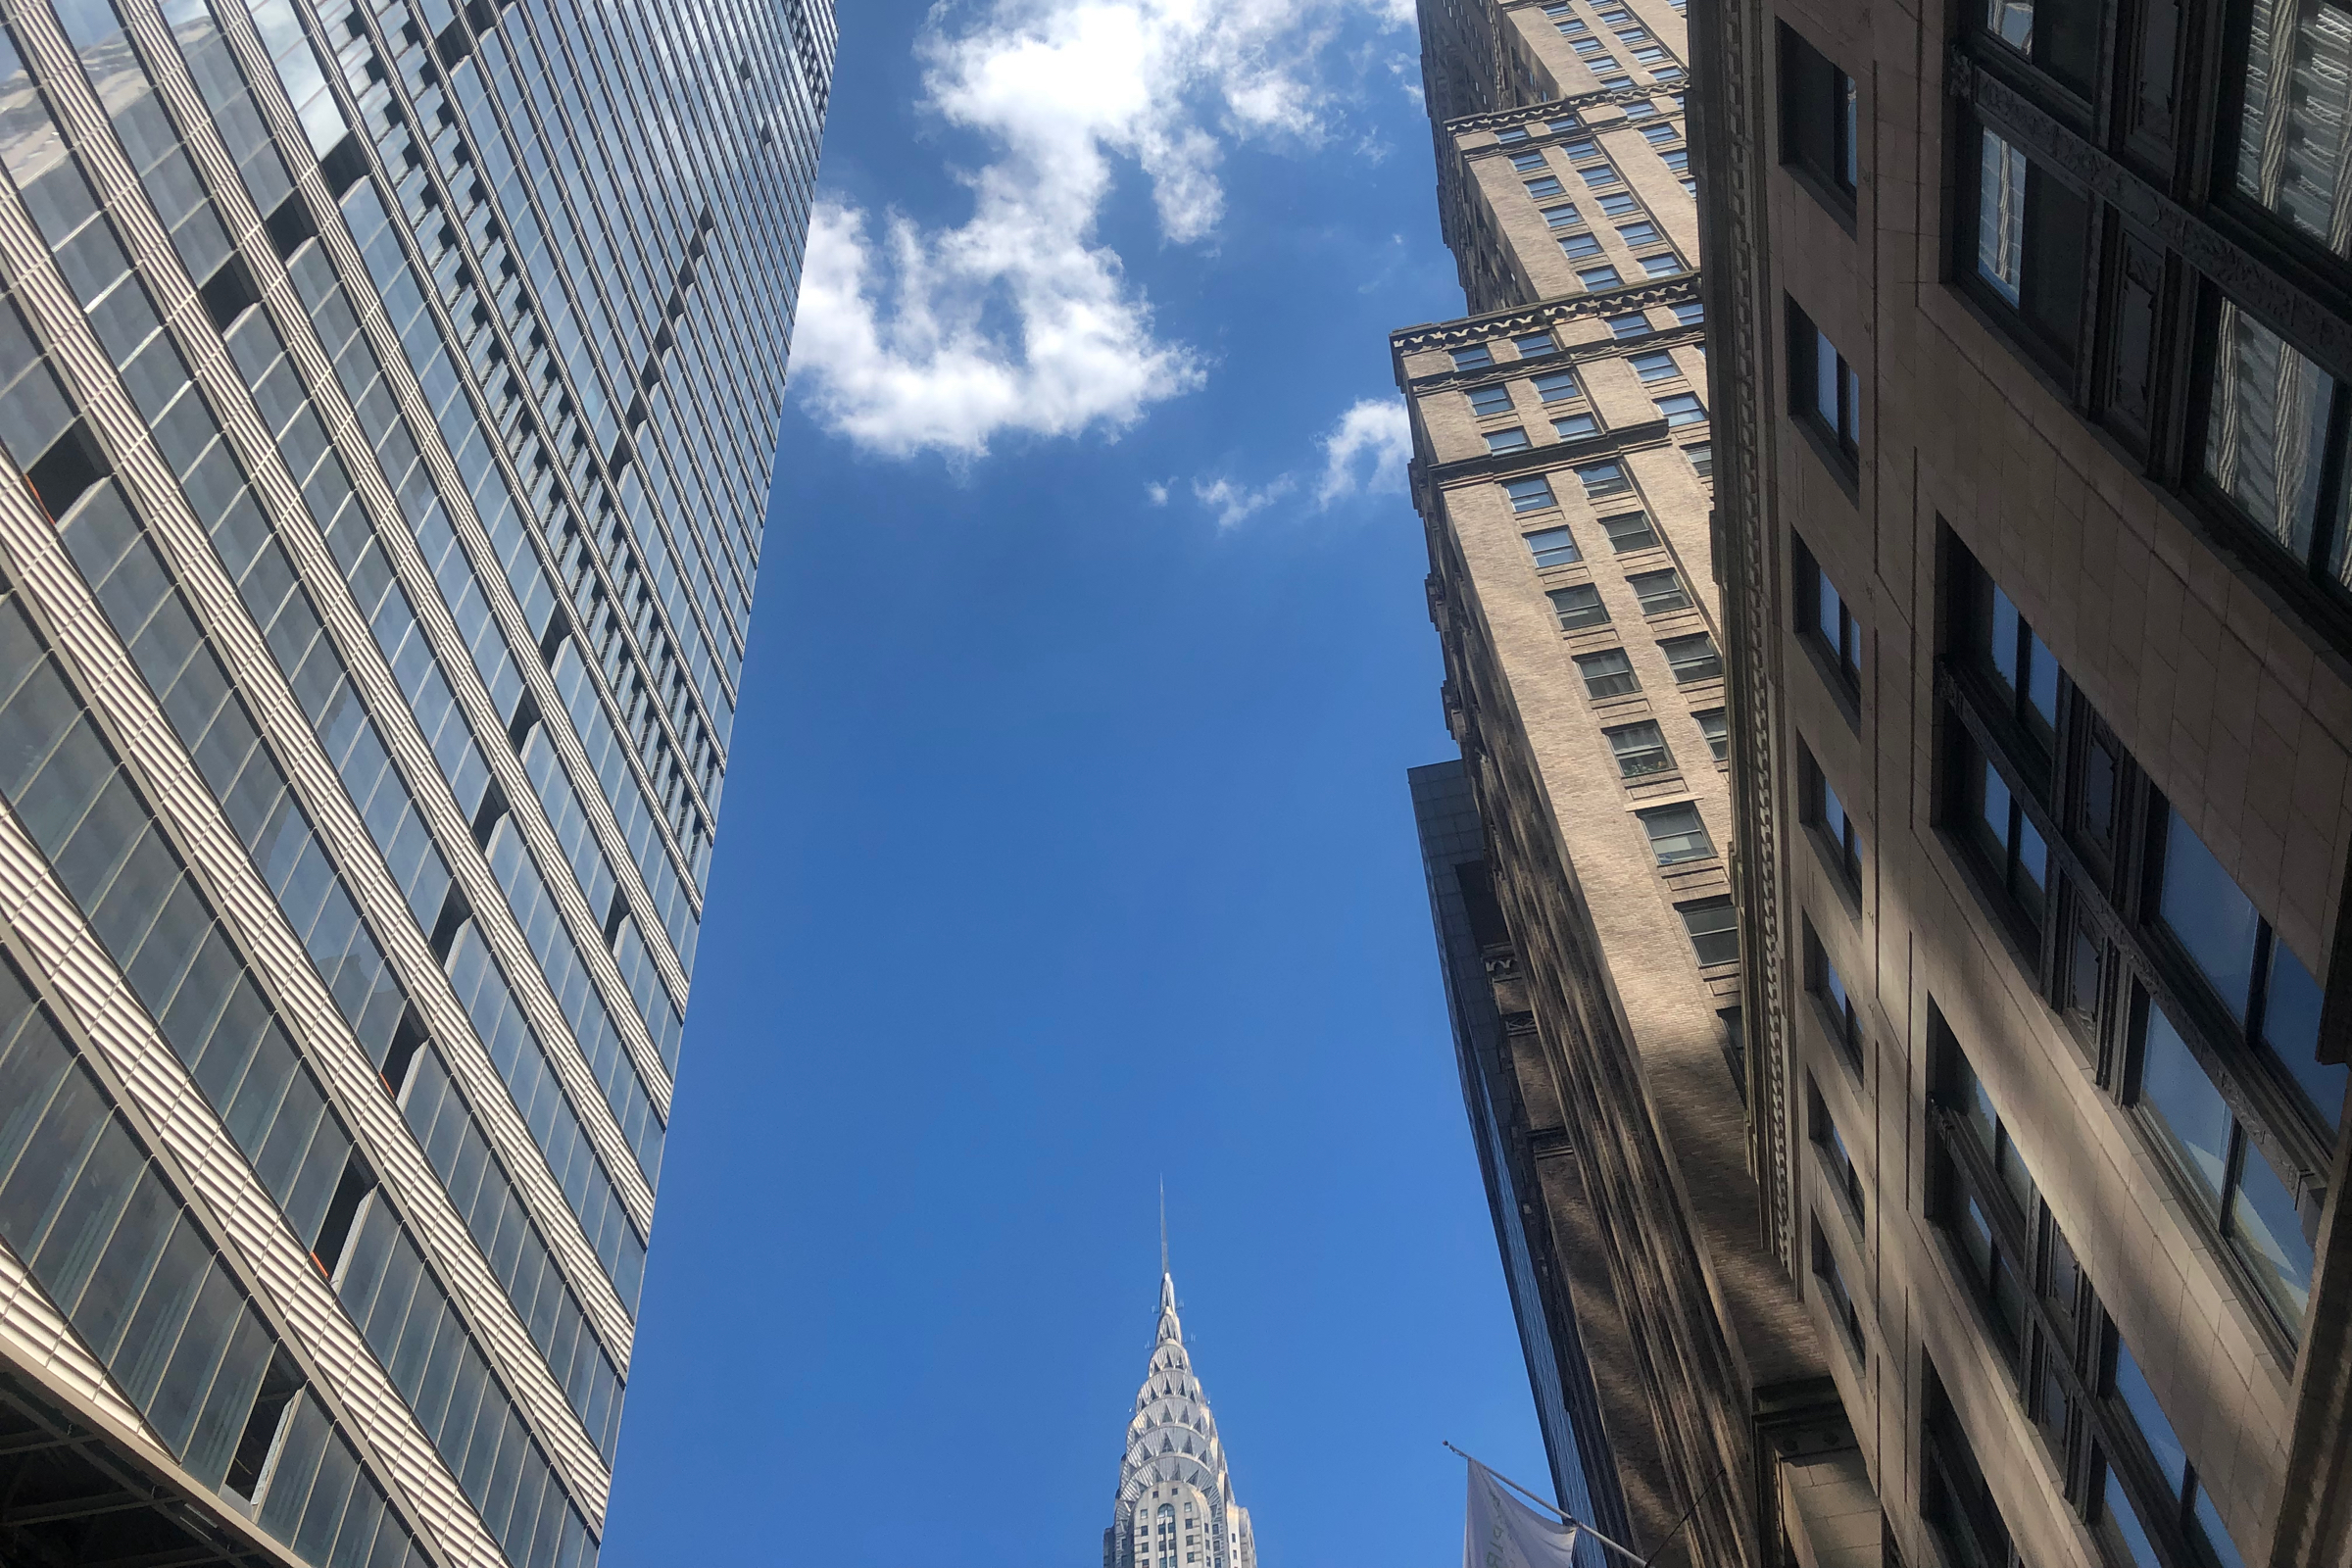 #853: Chrysler Building